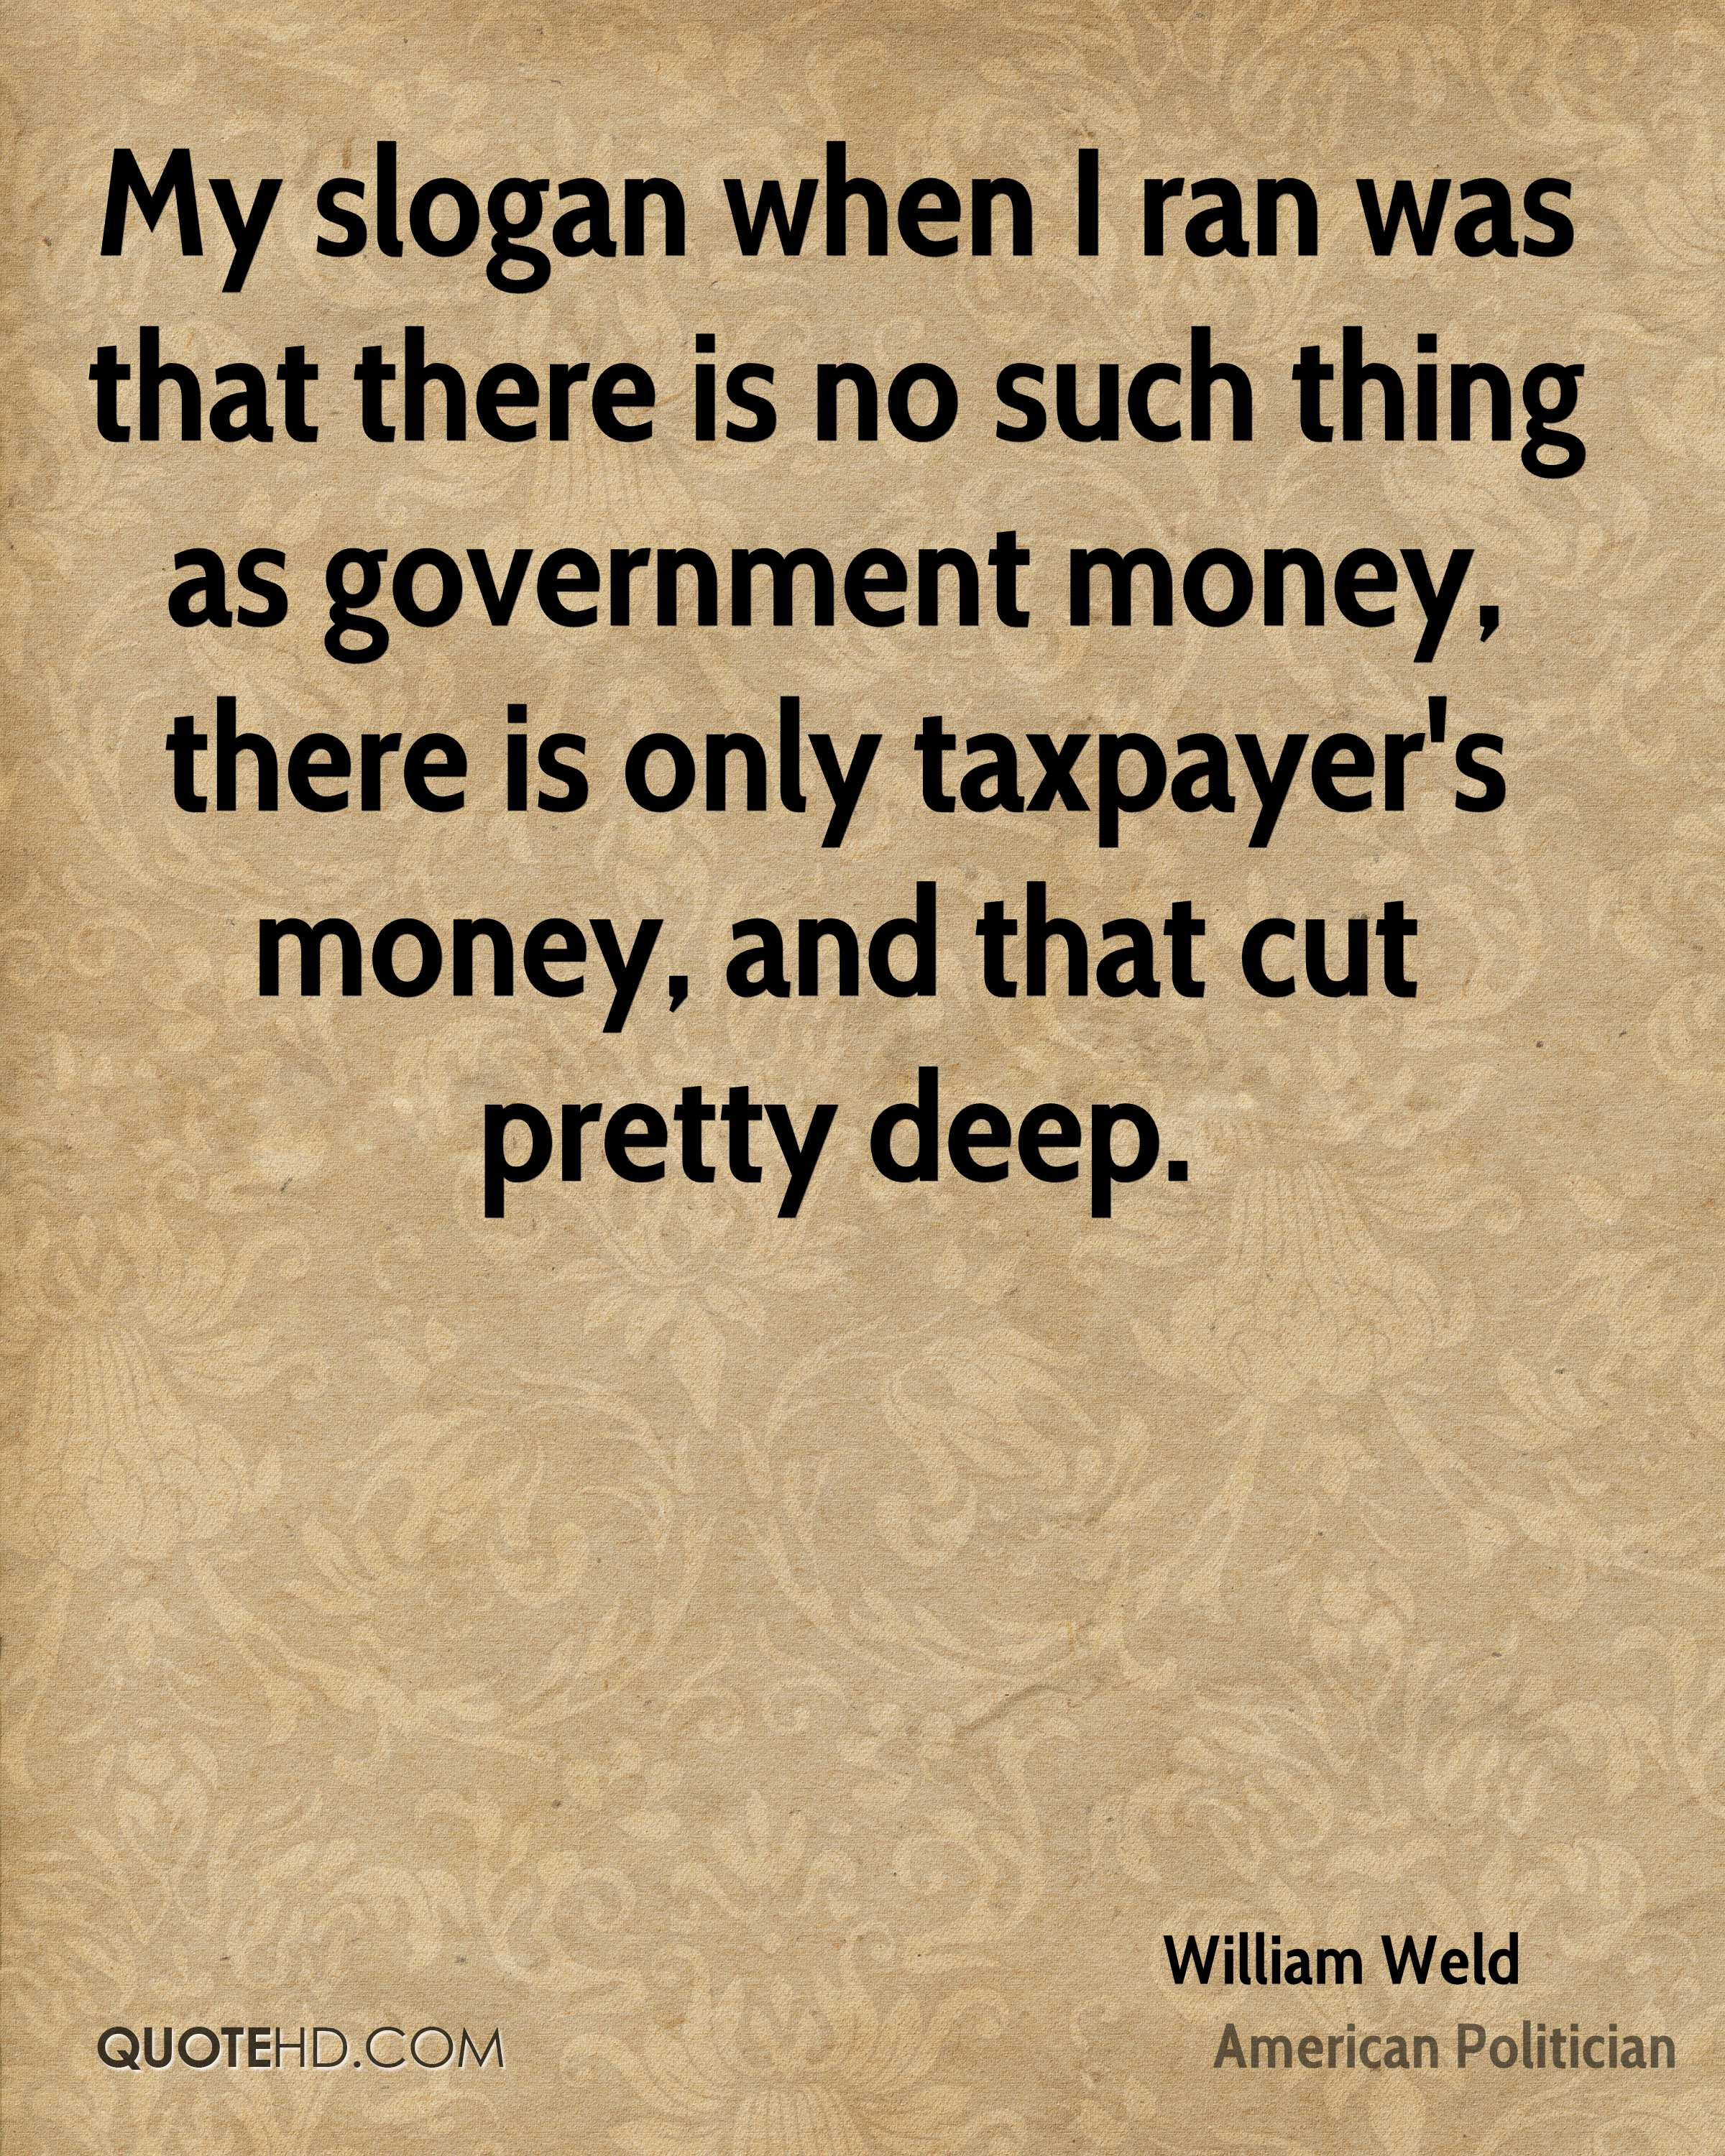 My slogan when I ran was that there is no such thing as government money, there is only taxpayer's money, and that cut pretty deep.